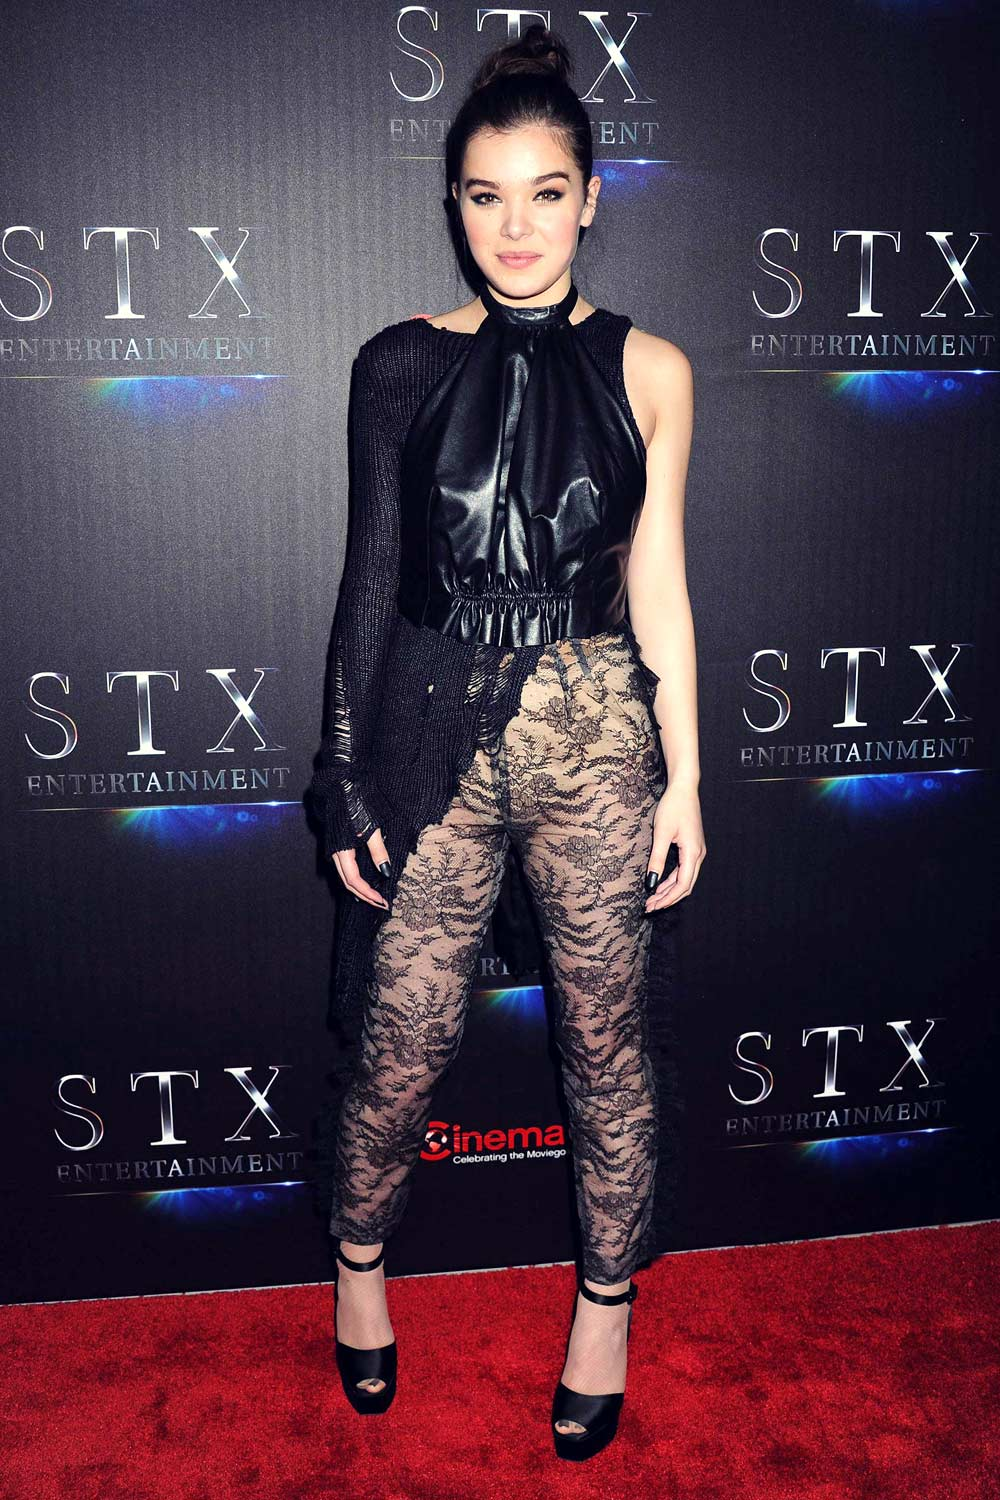 Hailee Steinfeld attends STX Entertainment CinemaCon Presentation